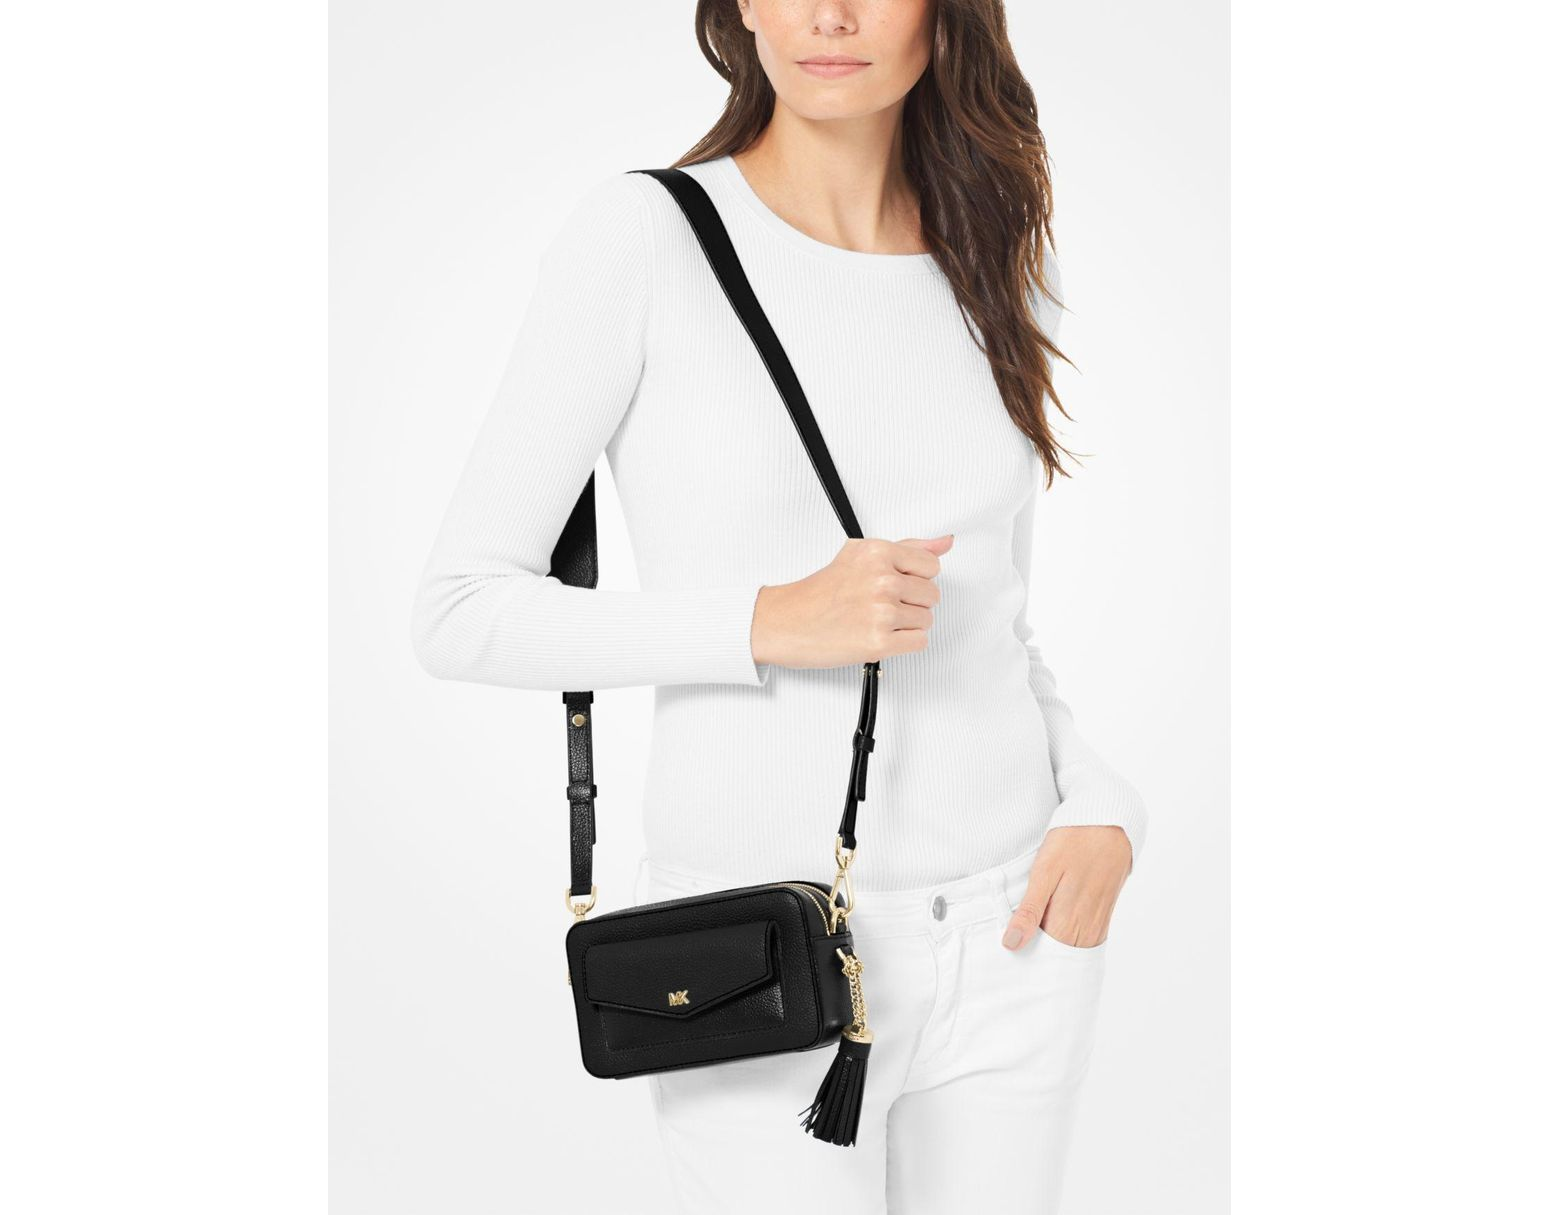 6097e4c5c97 MICHAEL Michael Kors Small Pebbled Leather Camera Bag in Black - Save 14% -  Lyst